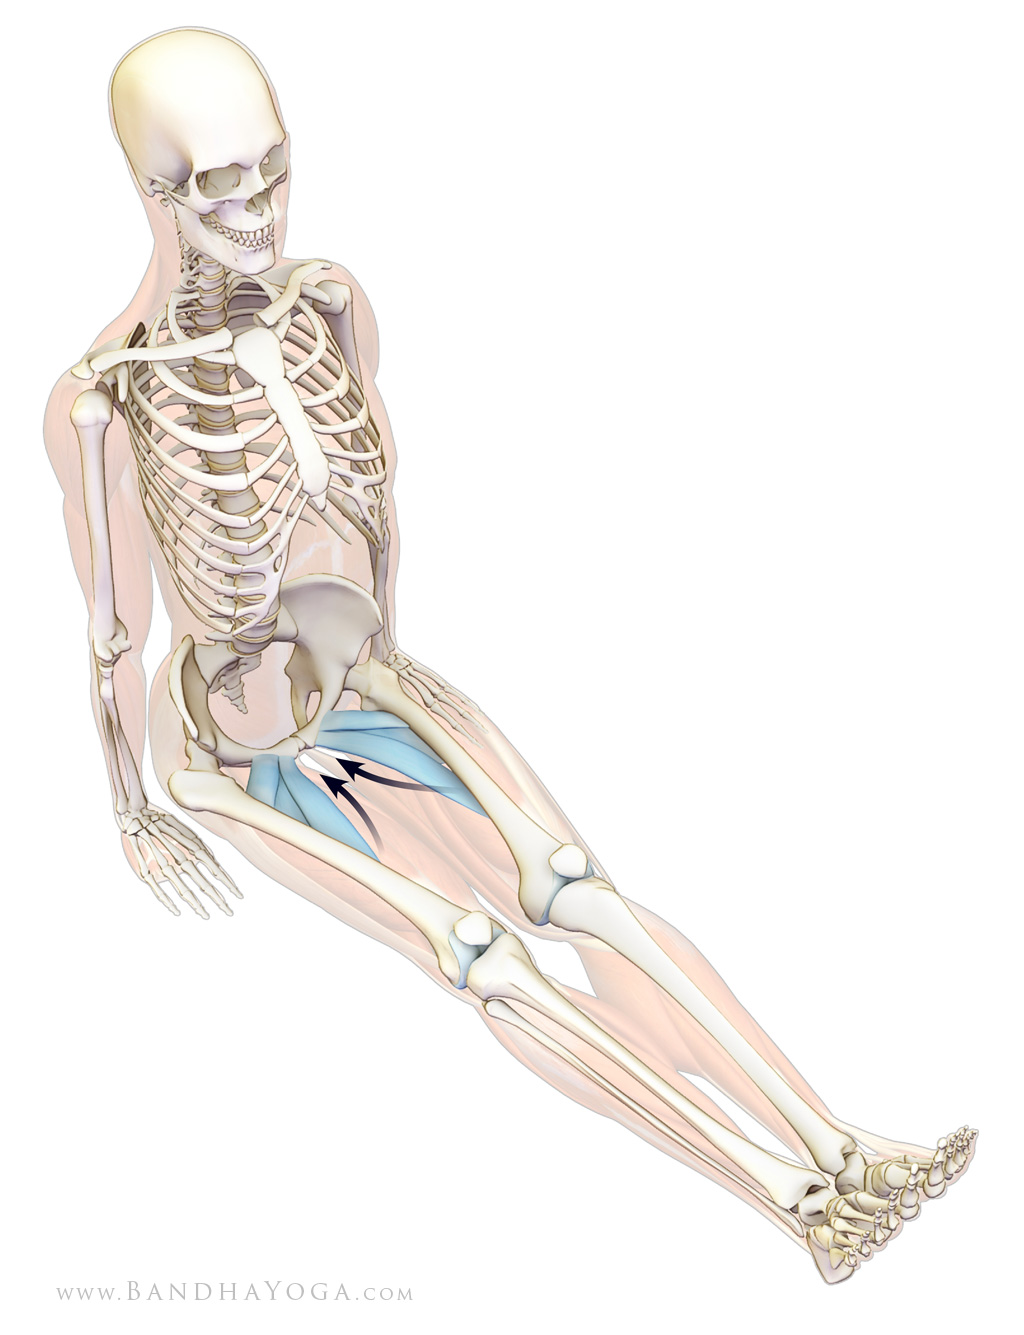 adductors longus, brevis and pectineus - dandasana